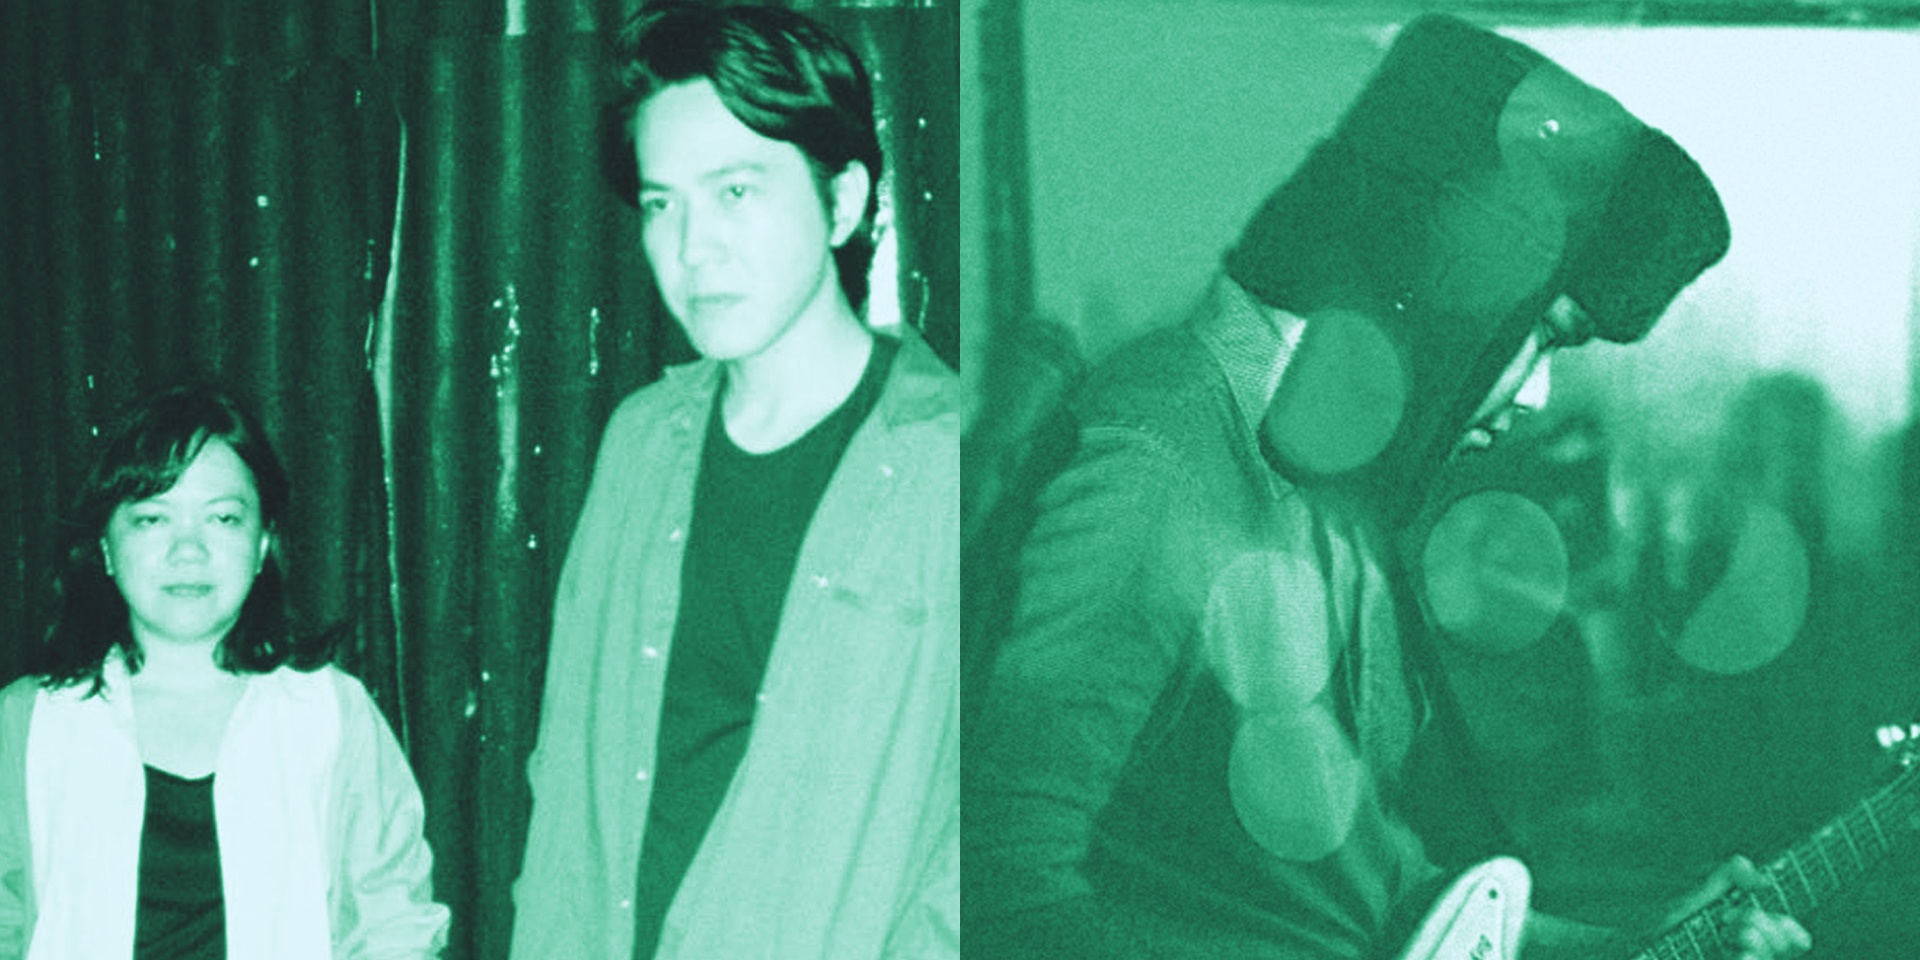 Outerhope and Big Hat Gang announce back-to-back Bangkok and Hanoi shows